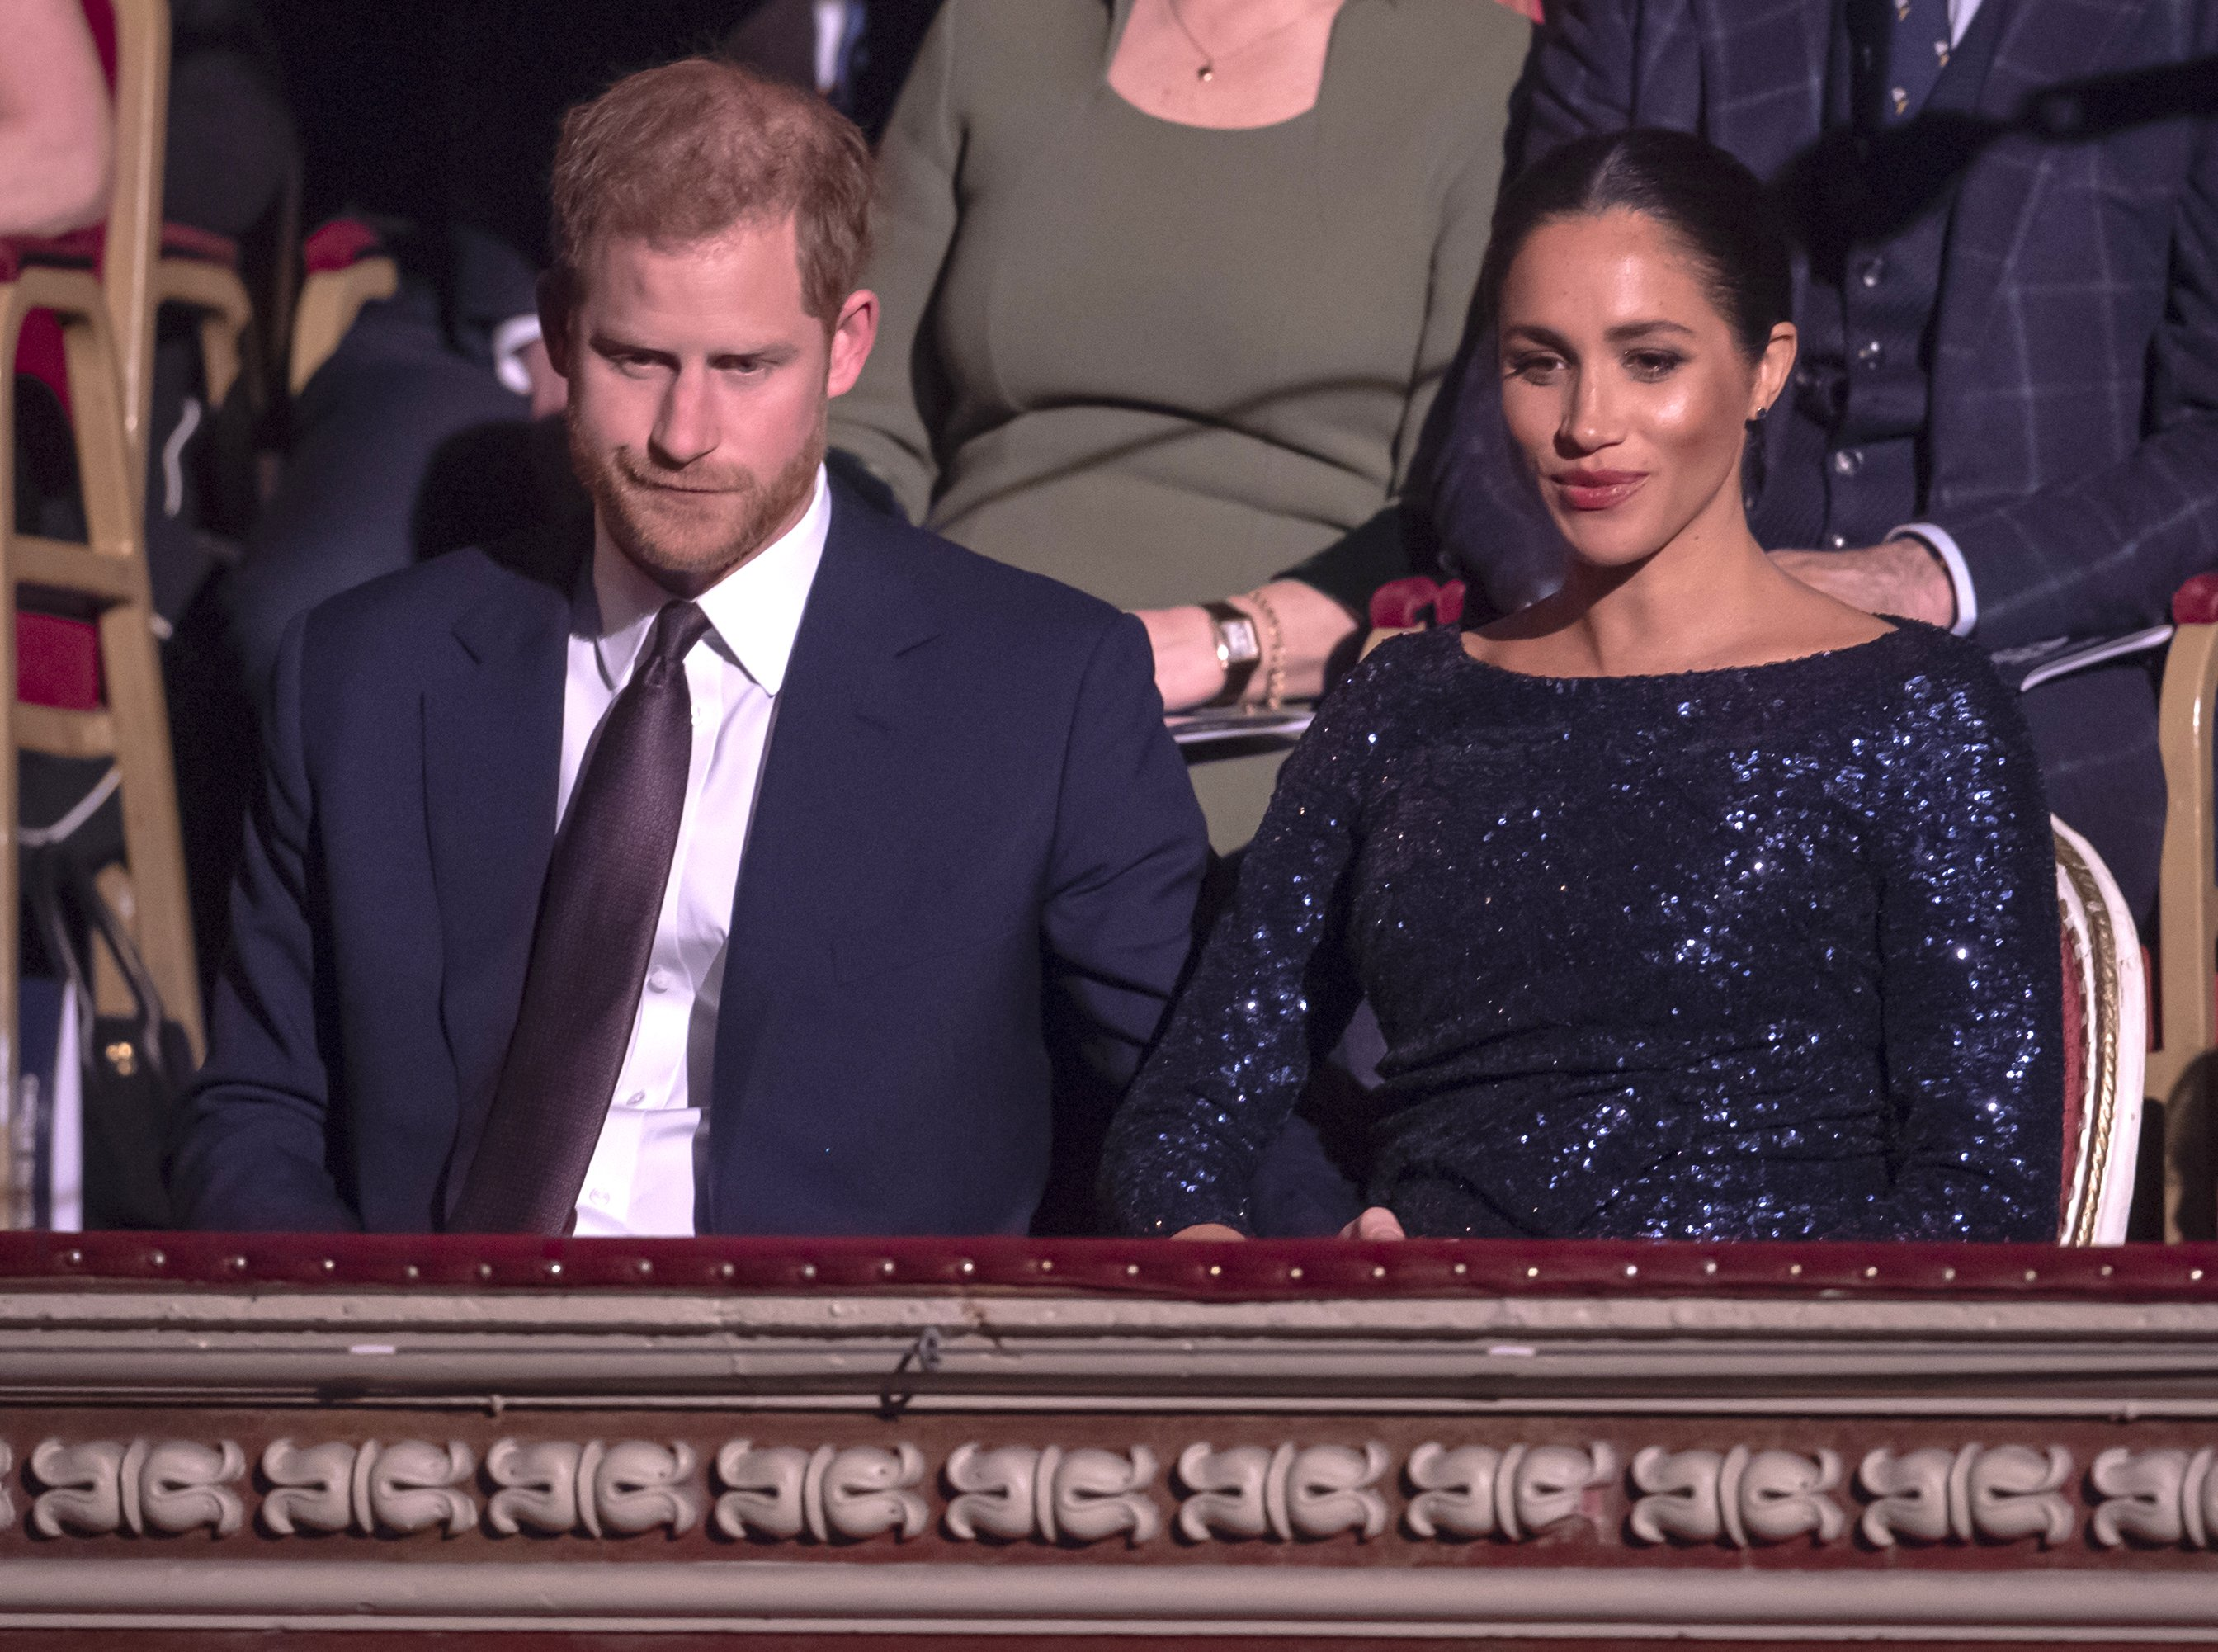 """Prince Harry, Duke of Sussex, and Meghan Markle, Duchess of Sussex, attending the Cirque du Soleil premiere of """"TOTEM"""" at the Royal Albert Hall on January 16, 2019 